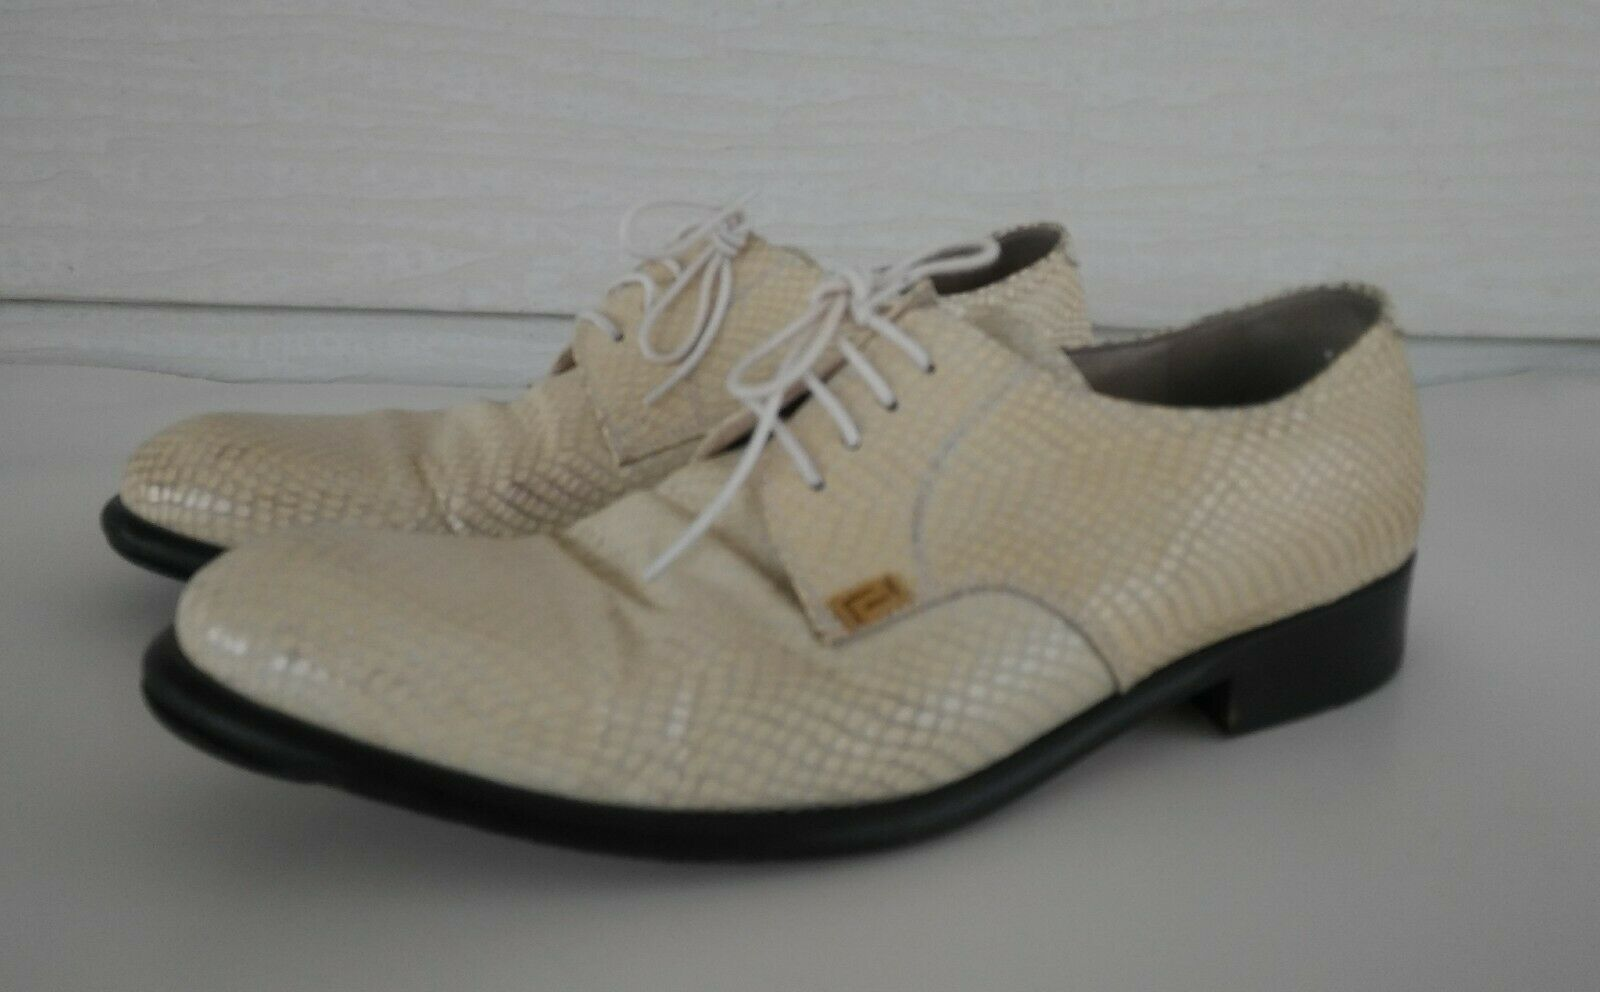 Gianni Versace Men's White Leather Couture Vintage Designer Dress shoes Size 9